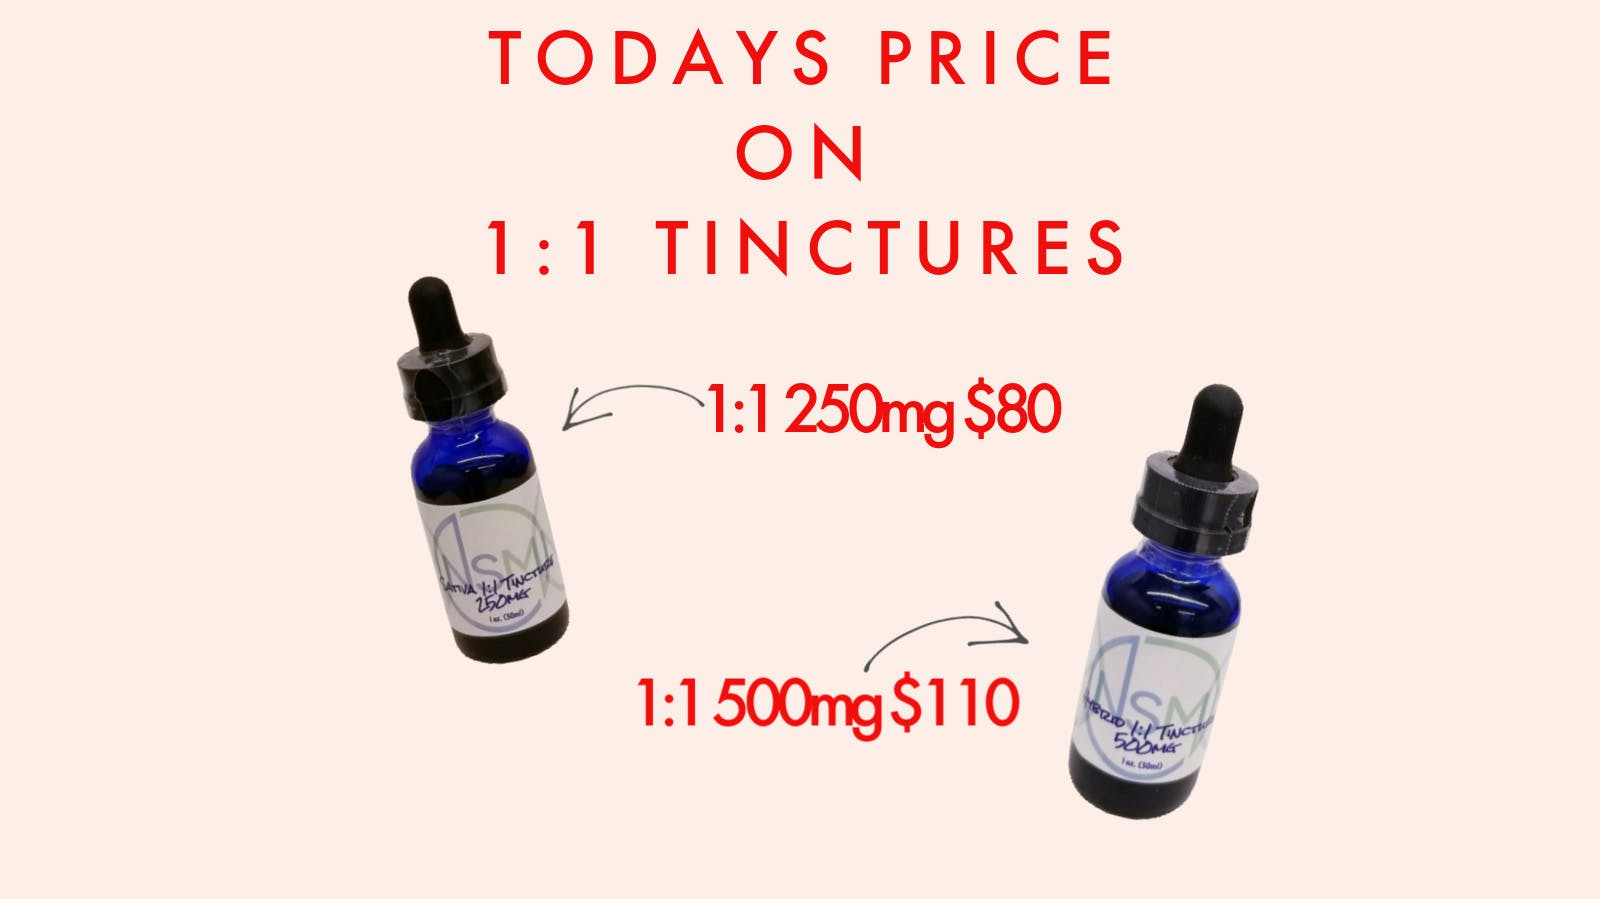 1:1 250mg TINCTURES & 1:1 500mg TINCTURES